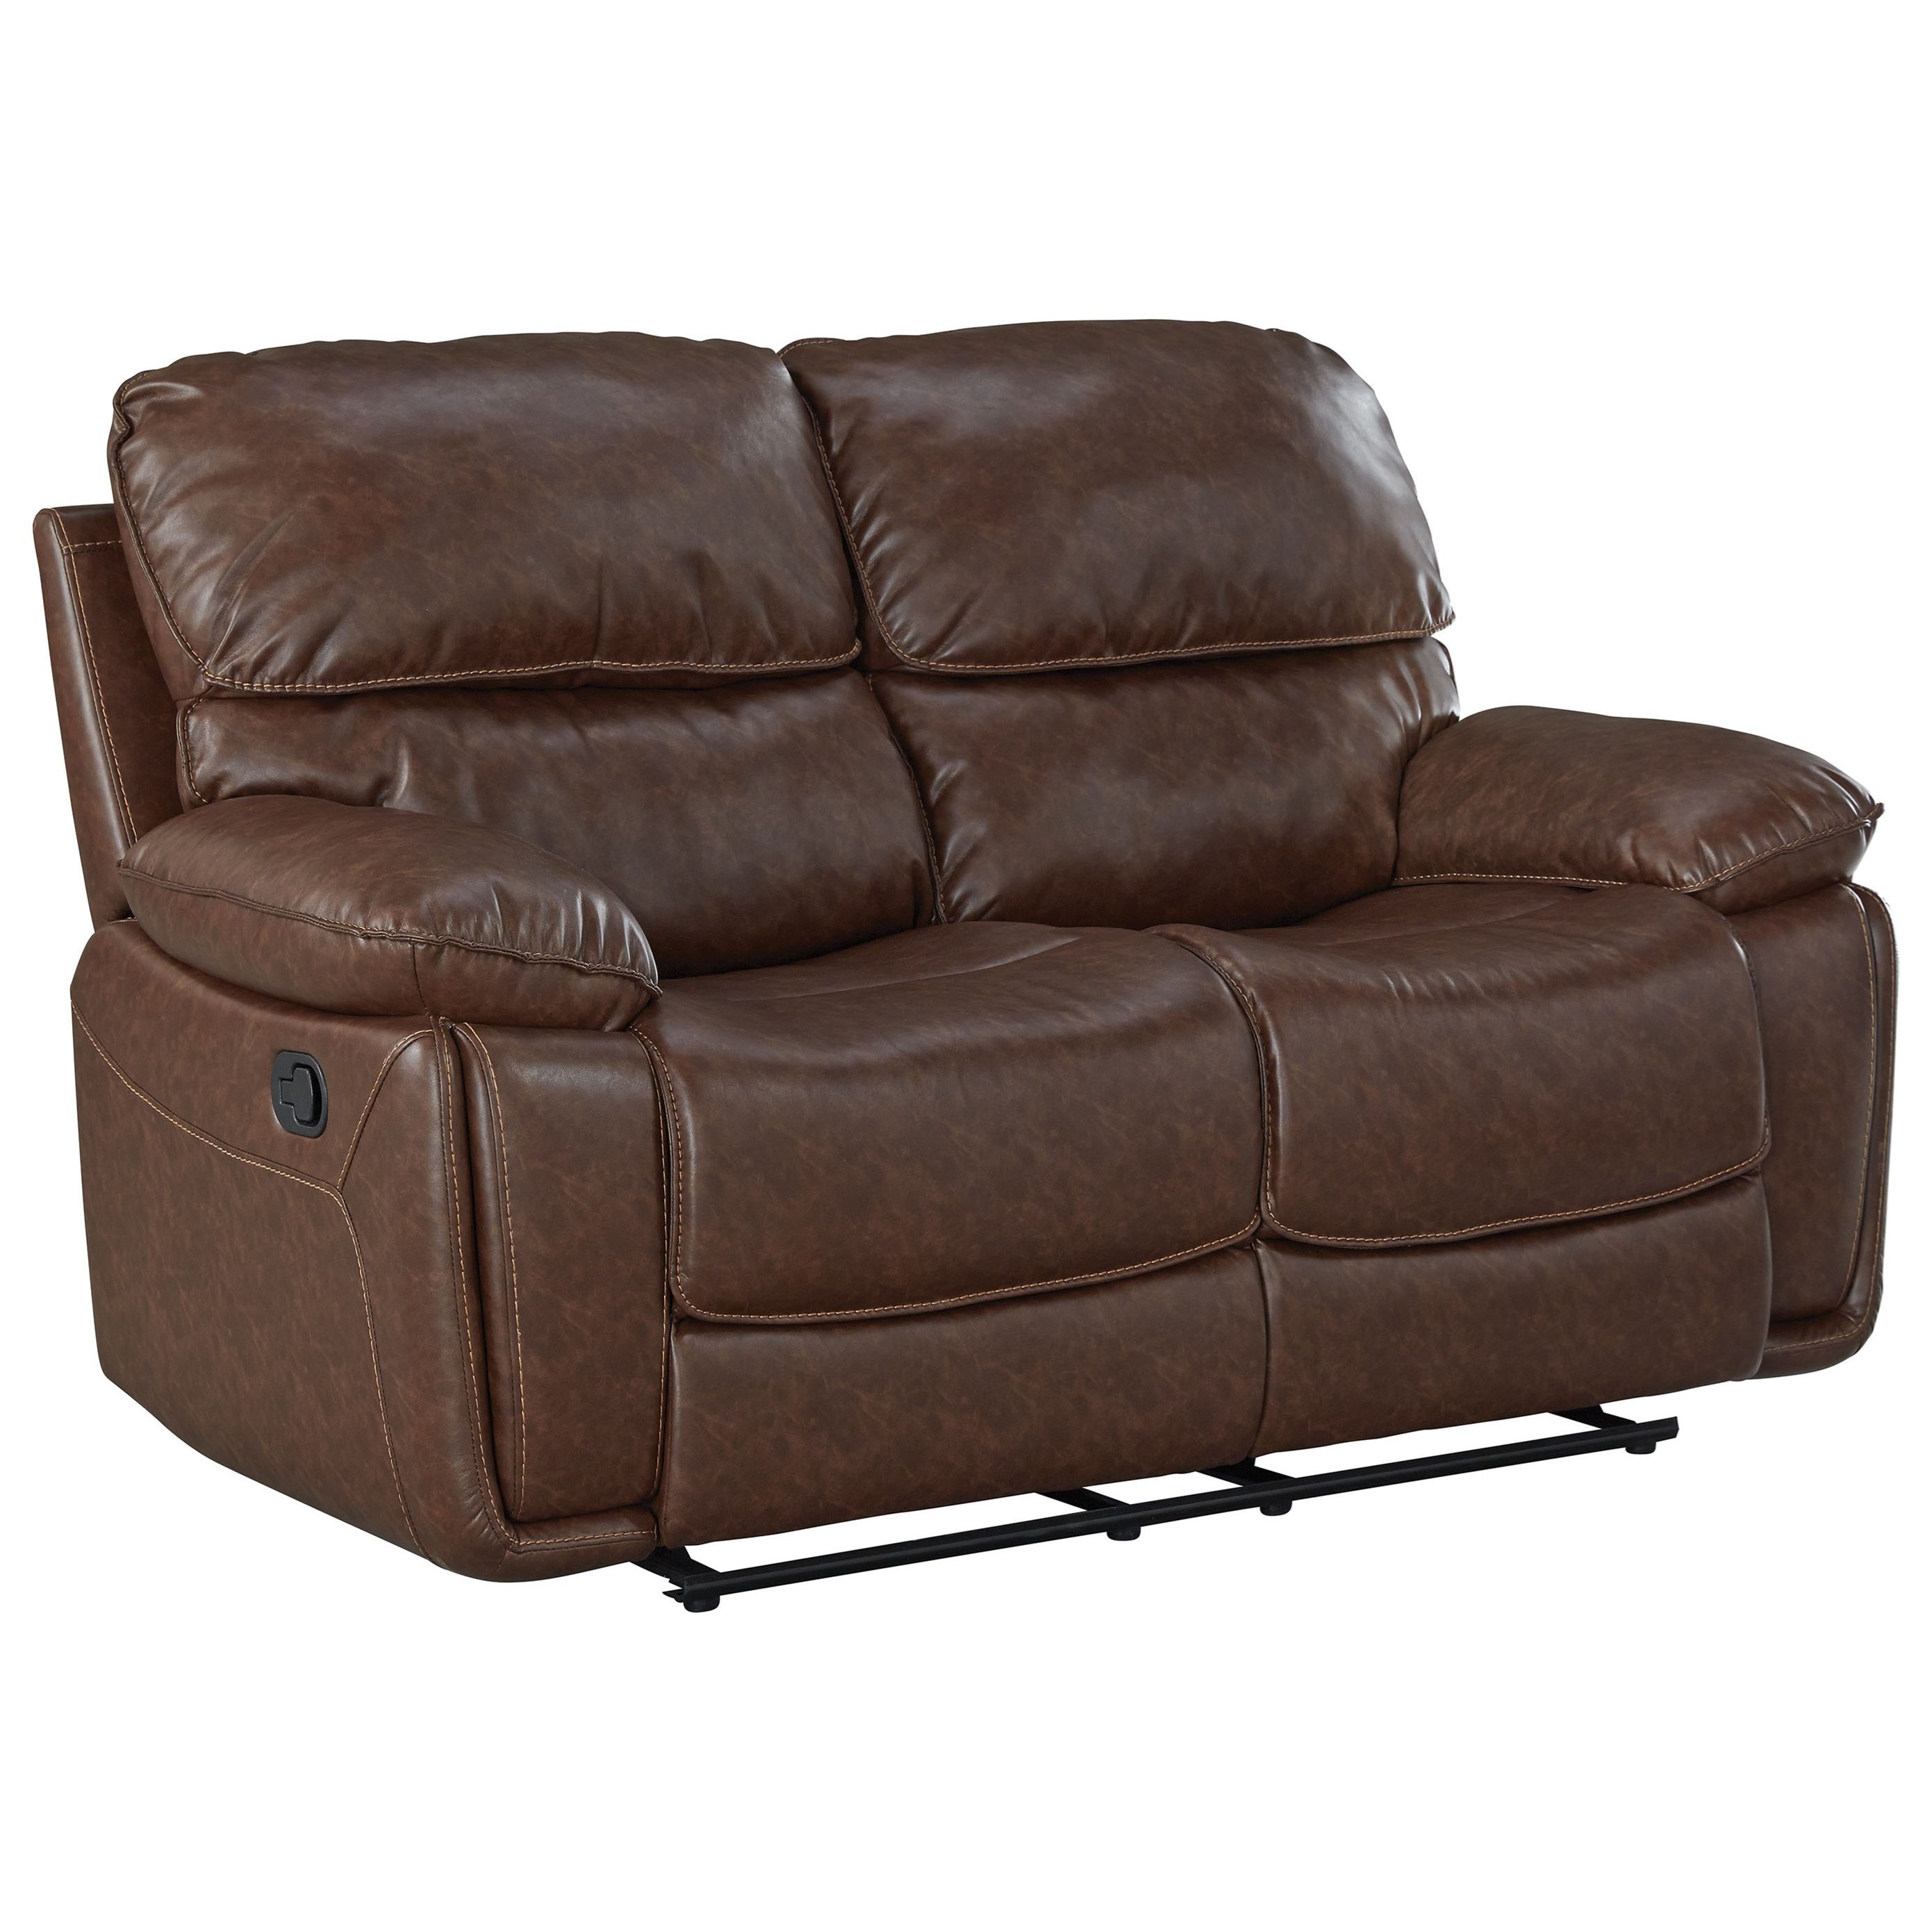 Colson Loveseat,Manual Motion by Standard Furniture at Rooms for Less